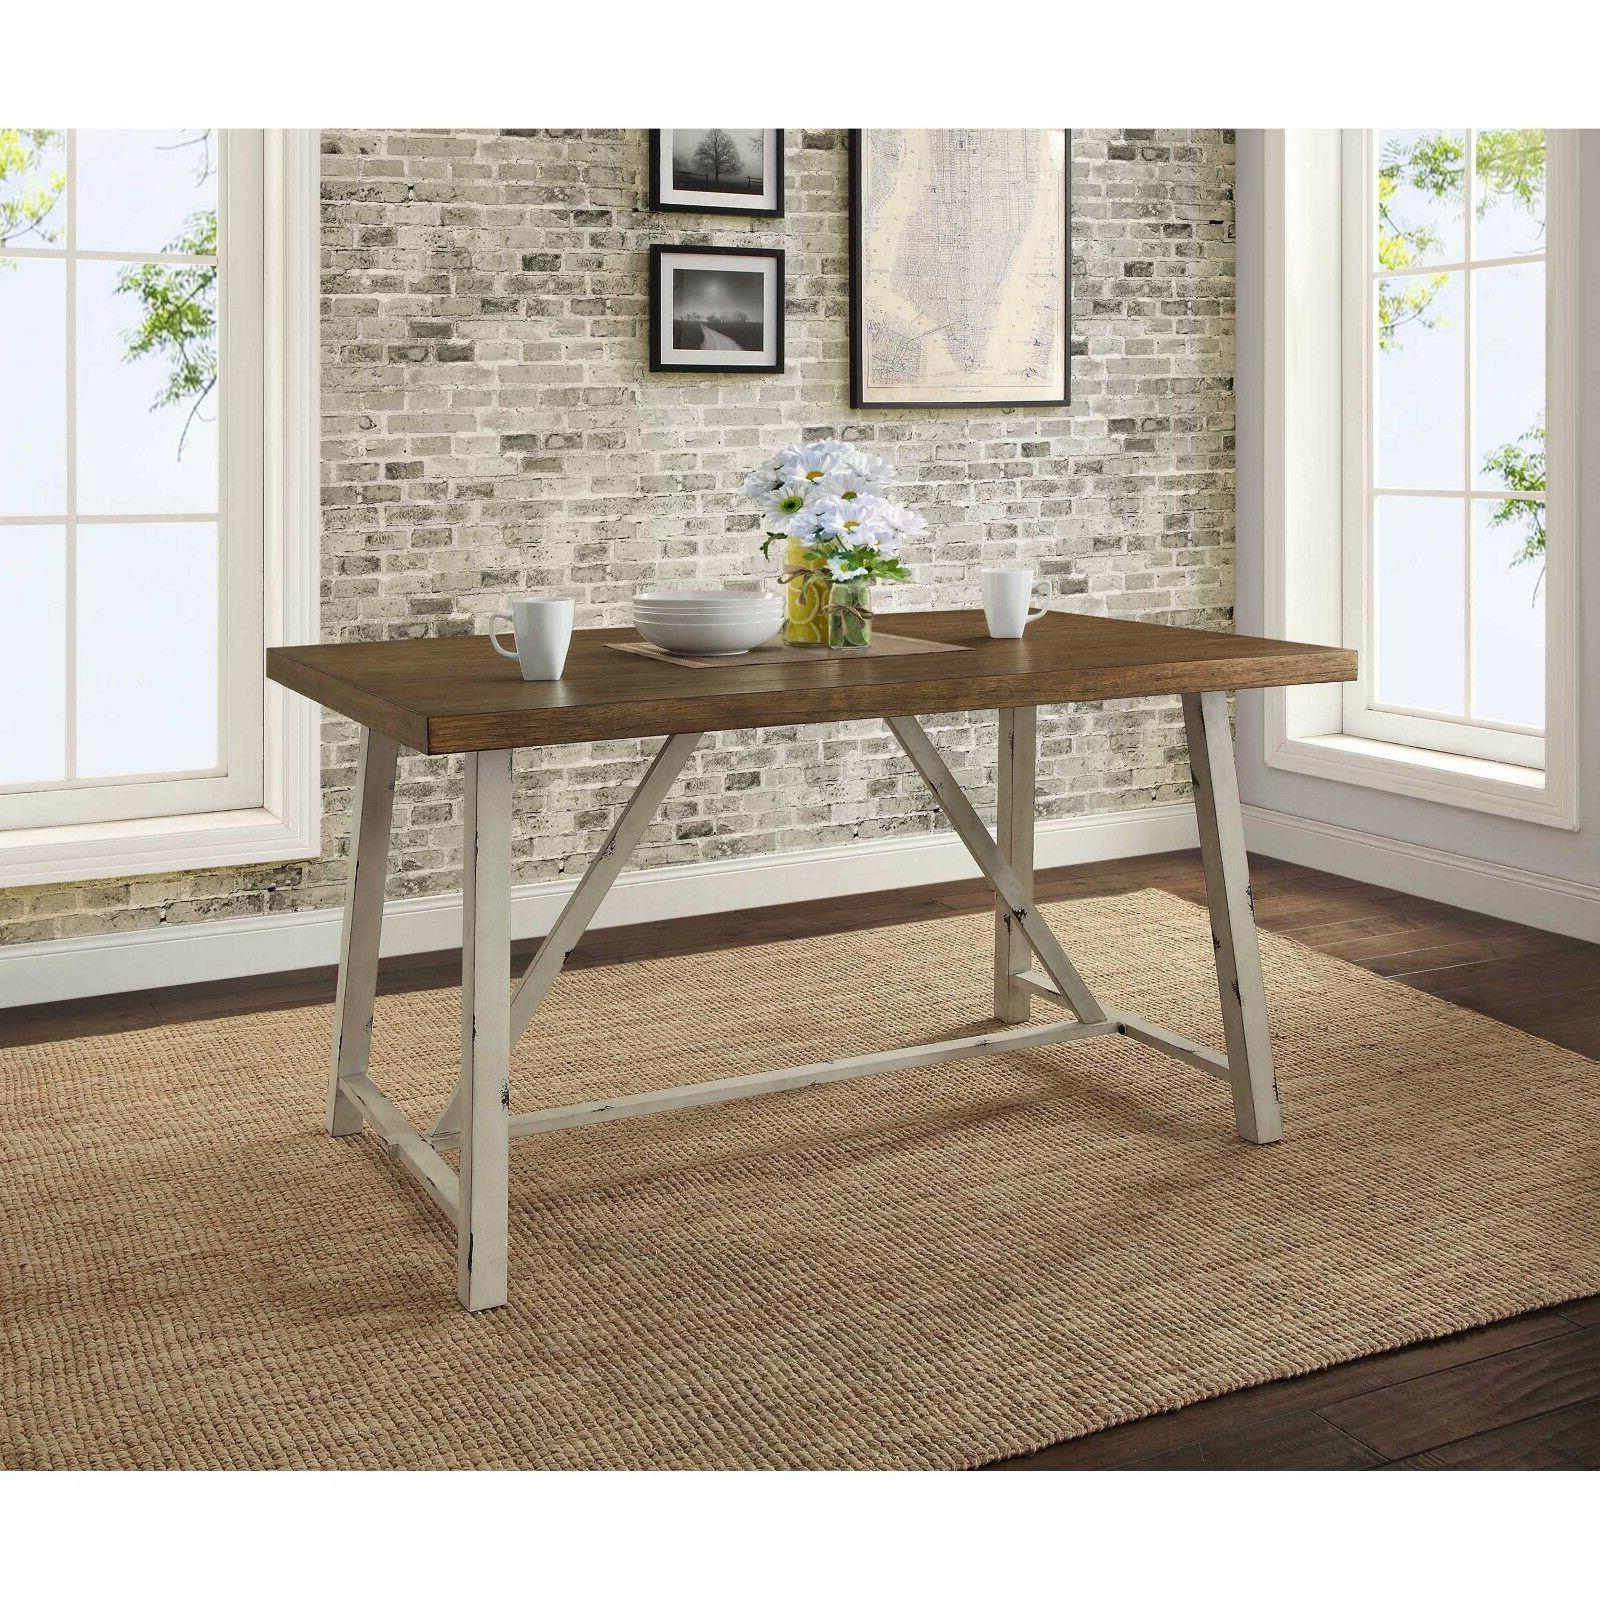 dining table farmhouse rustic 4 seat kitchen